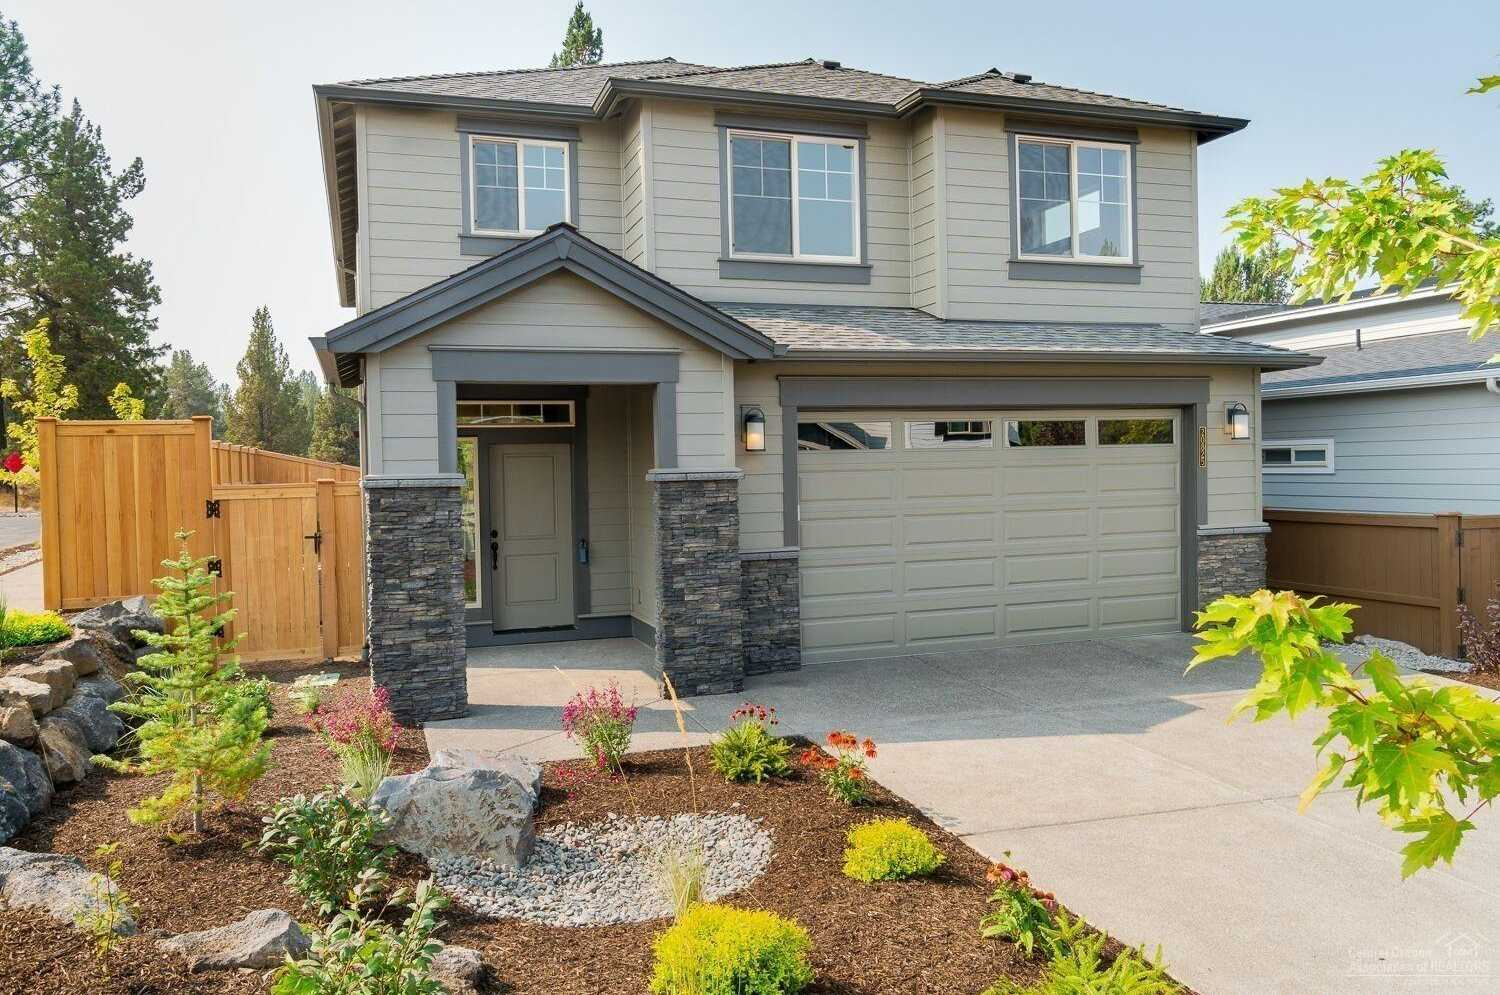 $529,900 - 4Br/3Ba -  for Sale in Bend